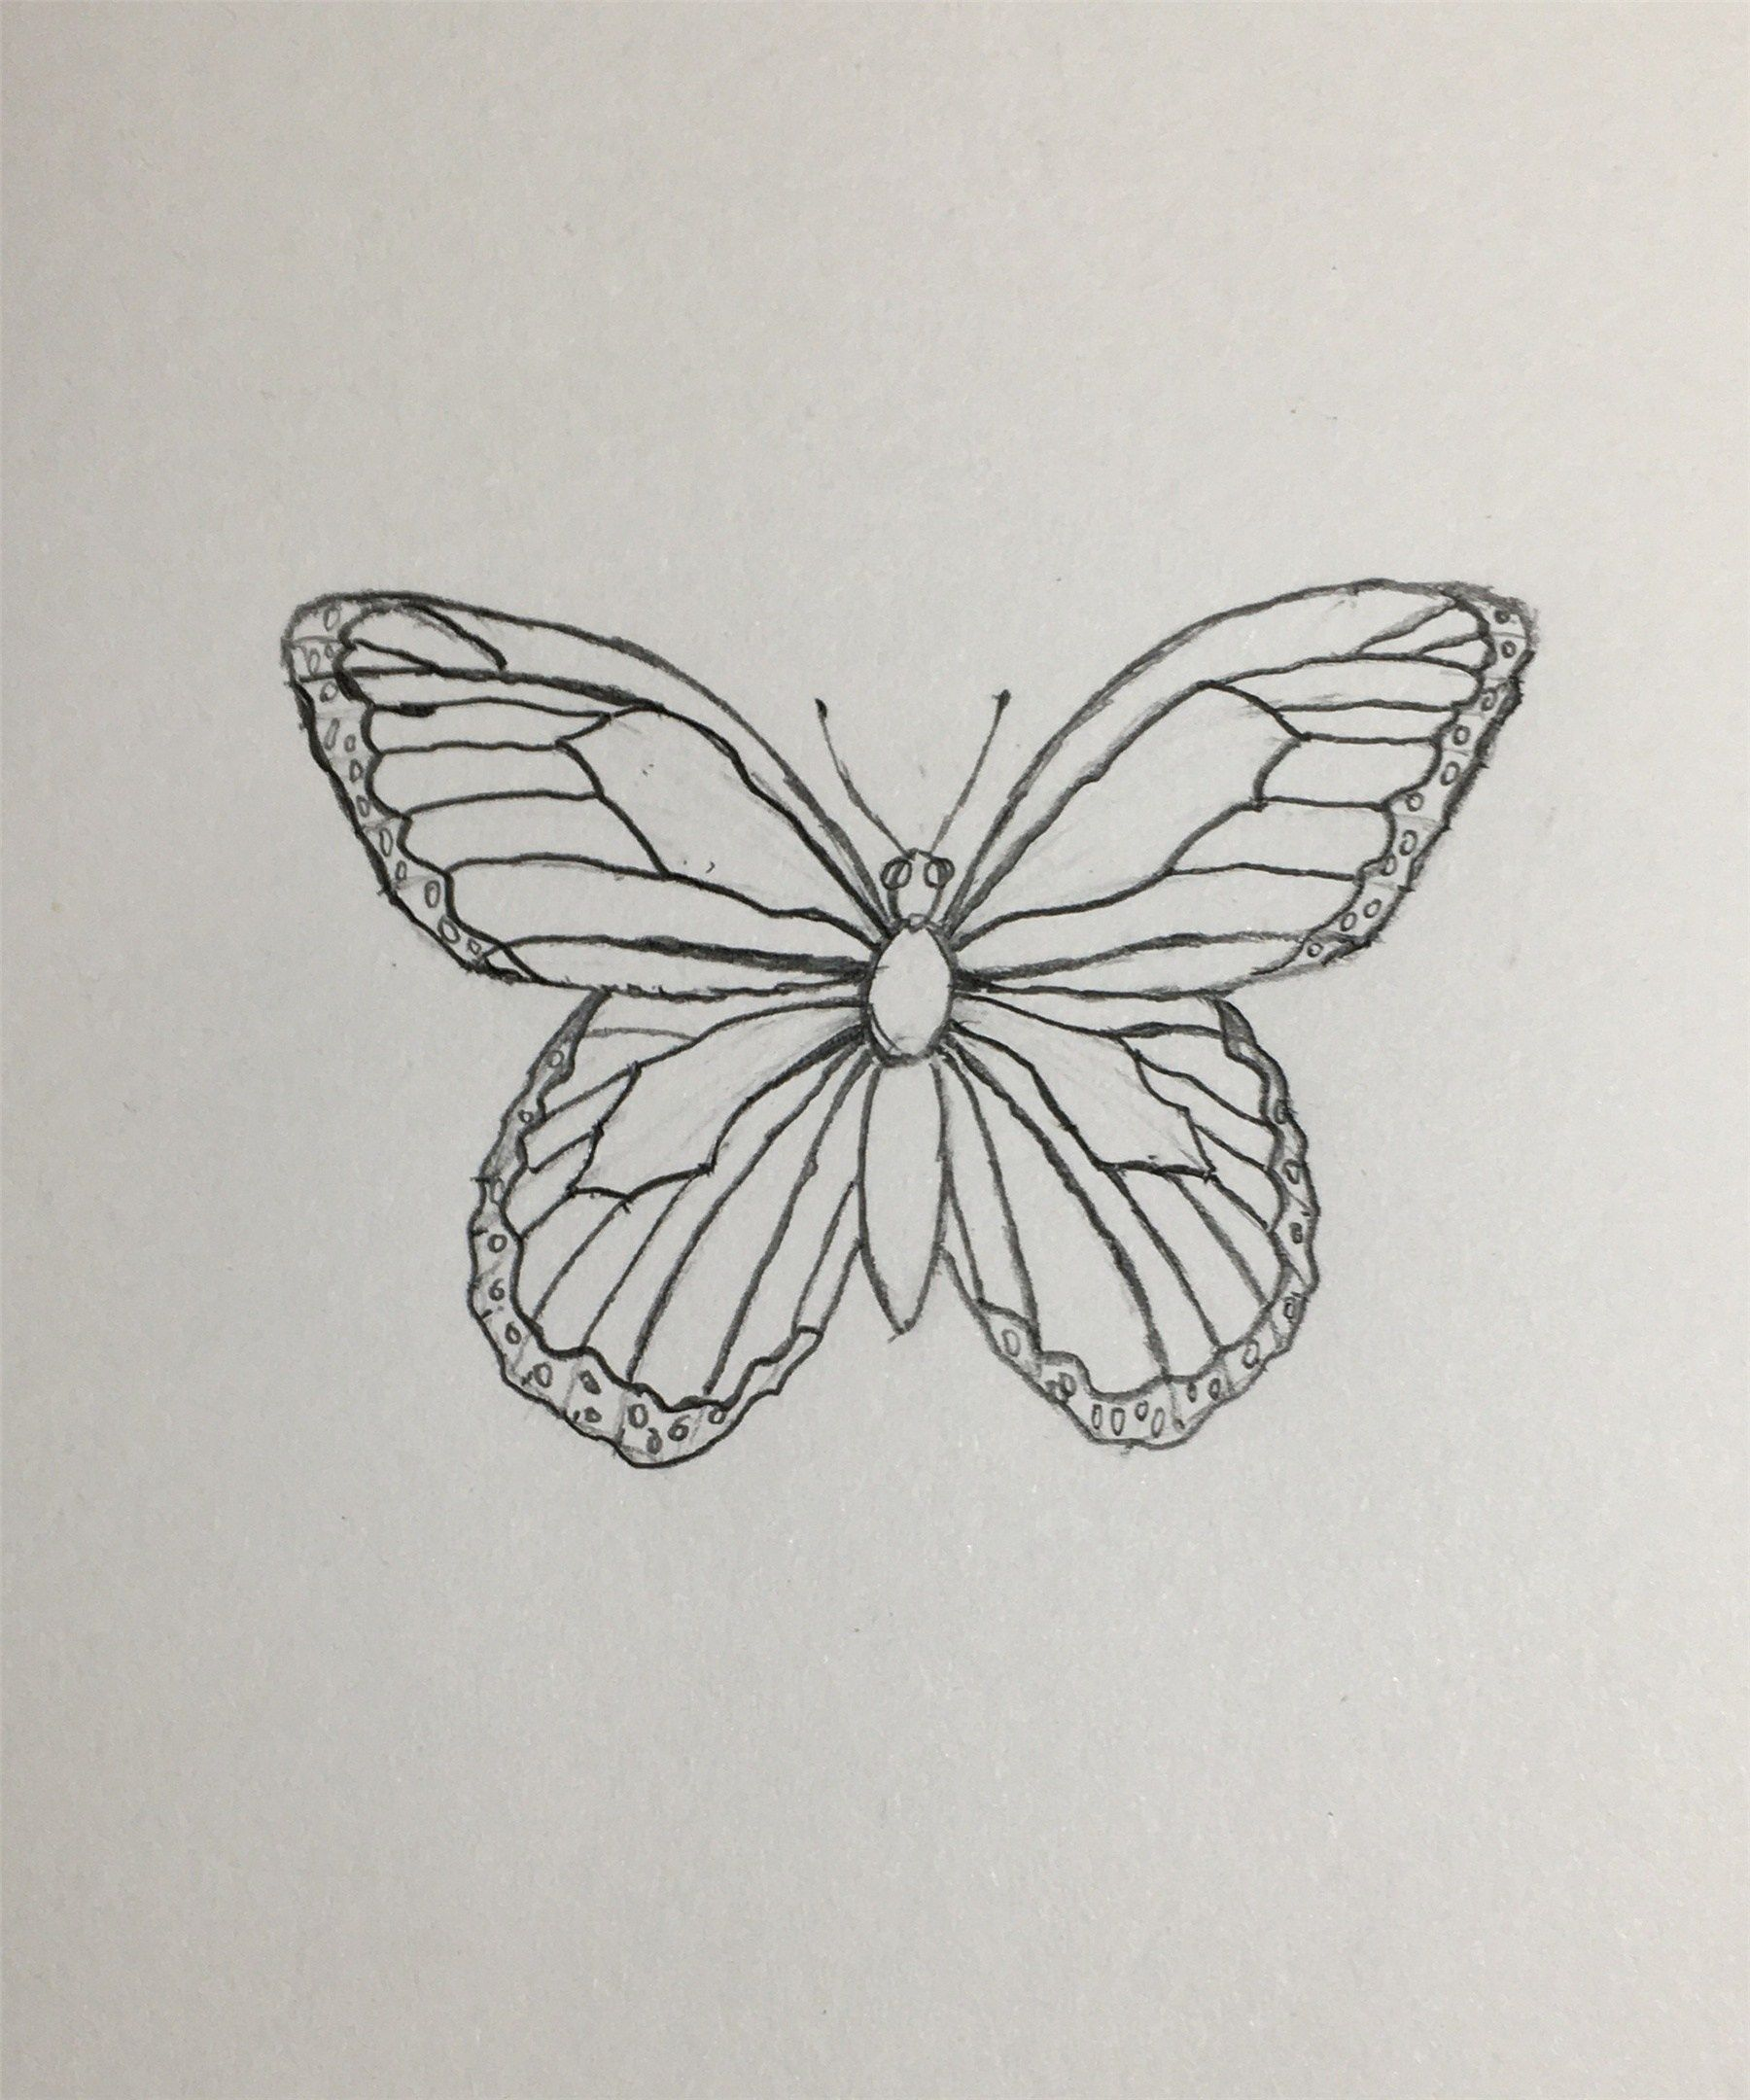 37ae0ece0d118b65382bb01e555799c9 » Butterfly Drawing Aesthetic